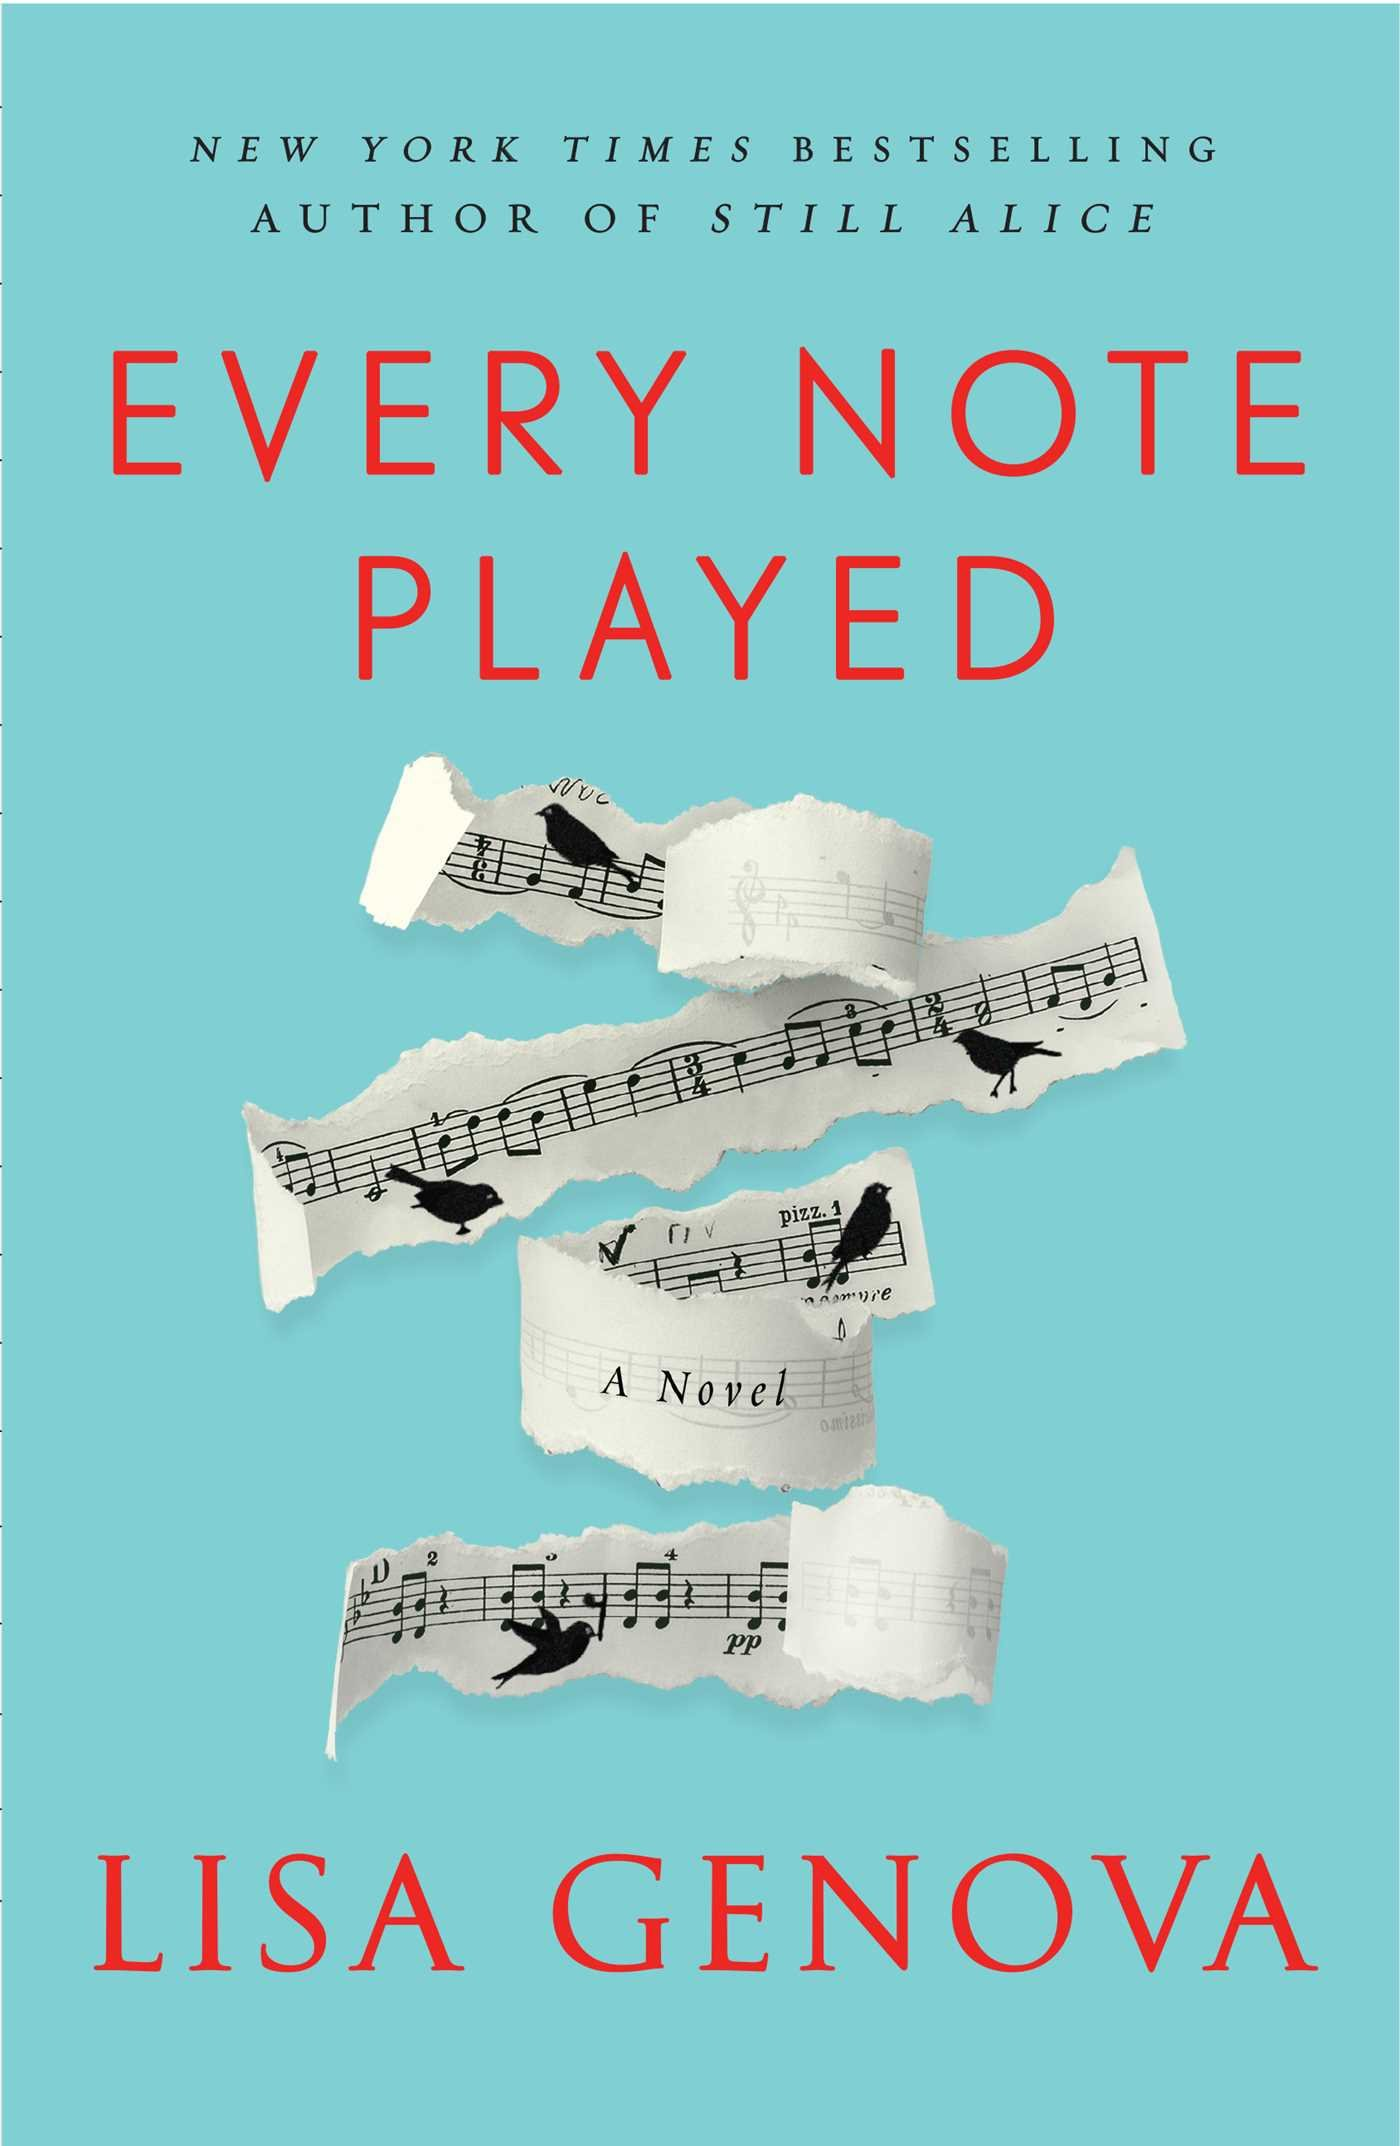 When a piano virtuoso is diagnosed with ALS, his estranged ex-wife takes up the cross of caring for him, and he is forced to balance reconciling his failed relationships with redefining his pursuit of greatness.